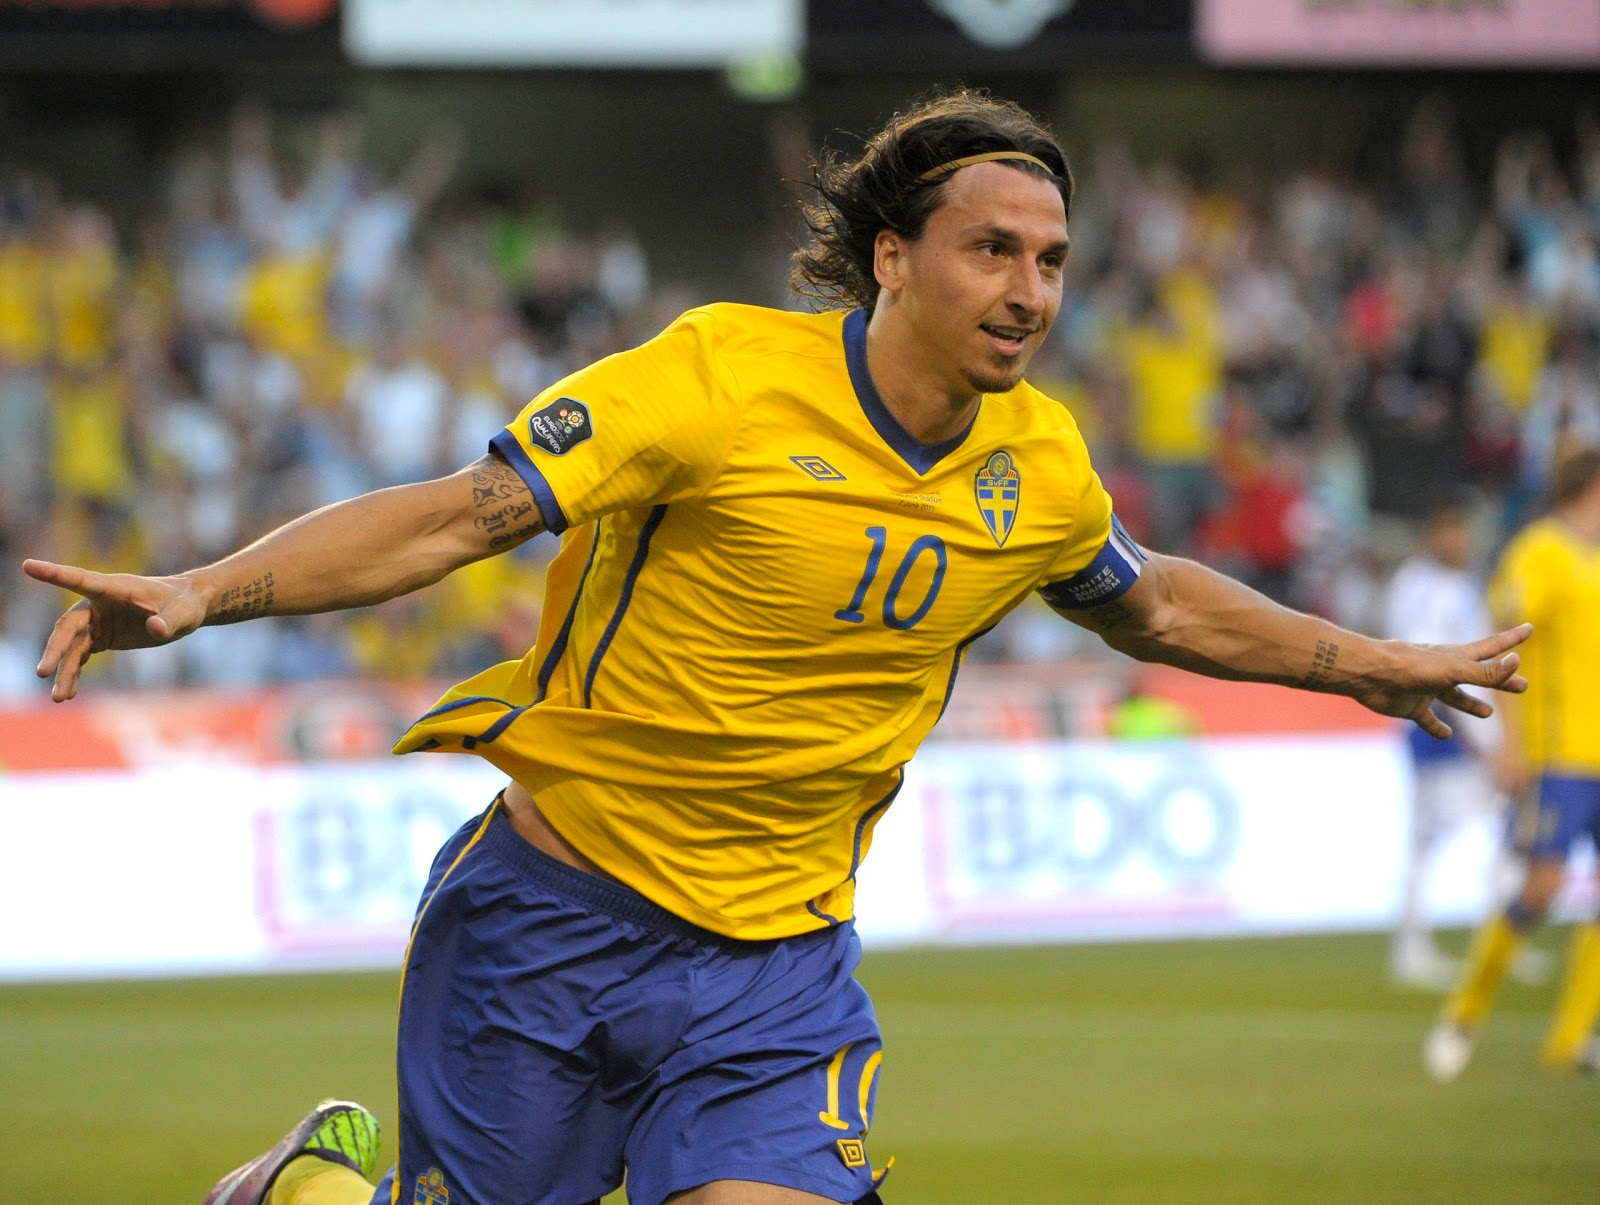 zlatan ibrahimovic profile and images wallpapers all. Black Bedroom Furniture Sets. Home Design Ideas